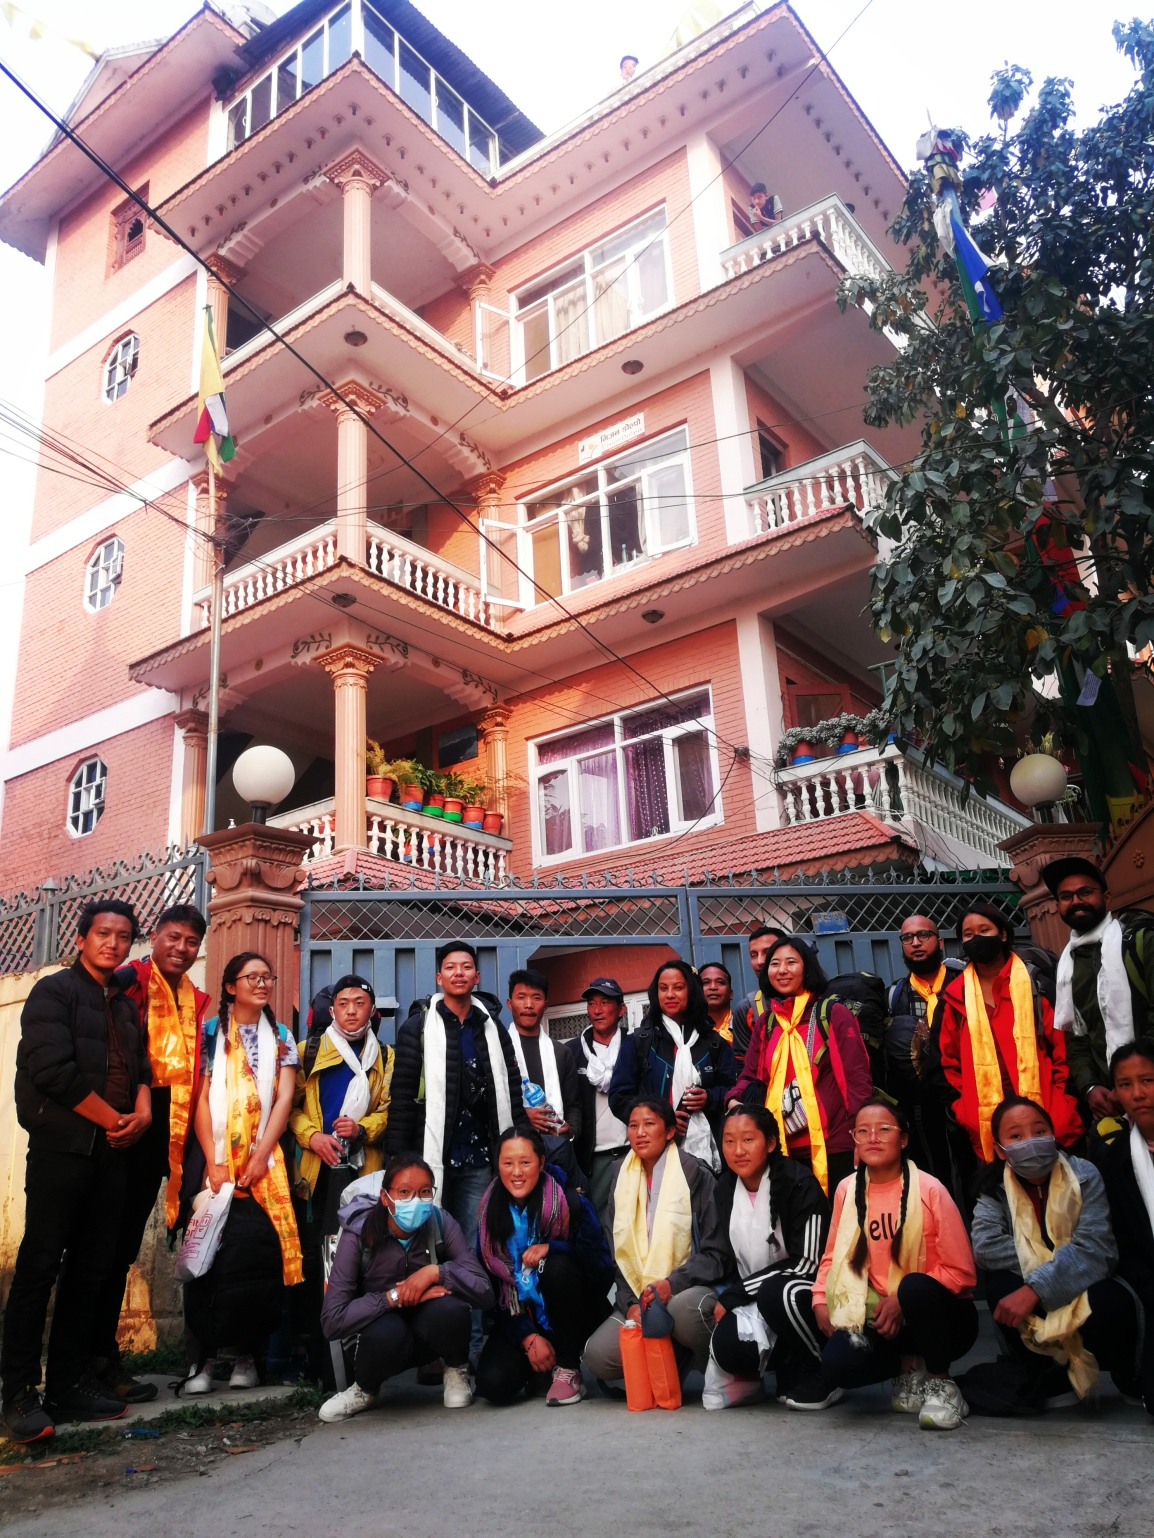 Snow Leopard Residence activities 2020/21 and Covid-19 Pandemic inNepal